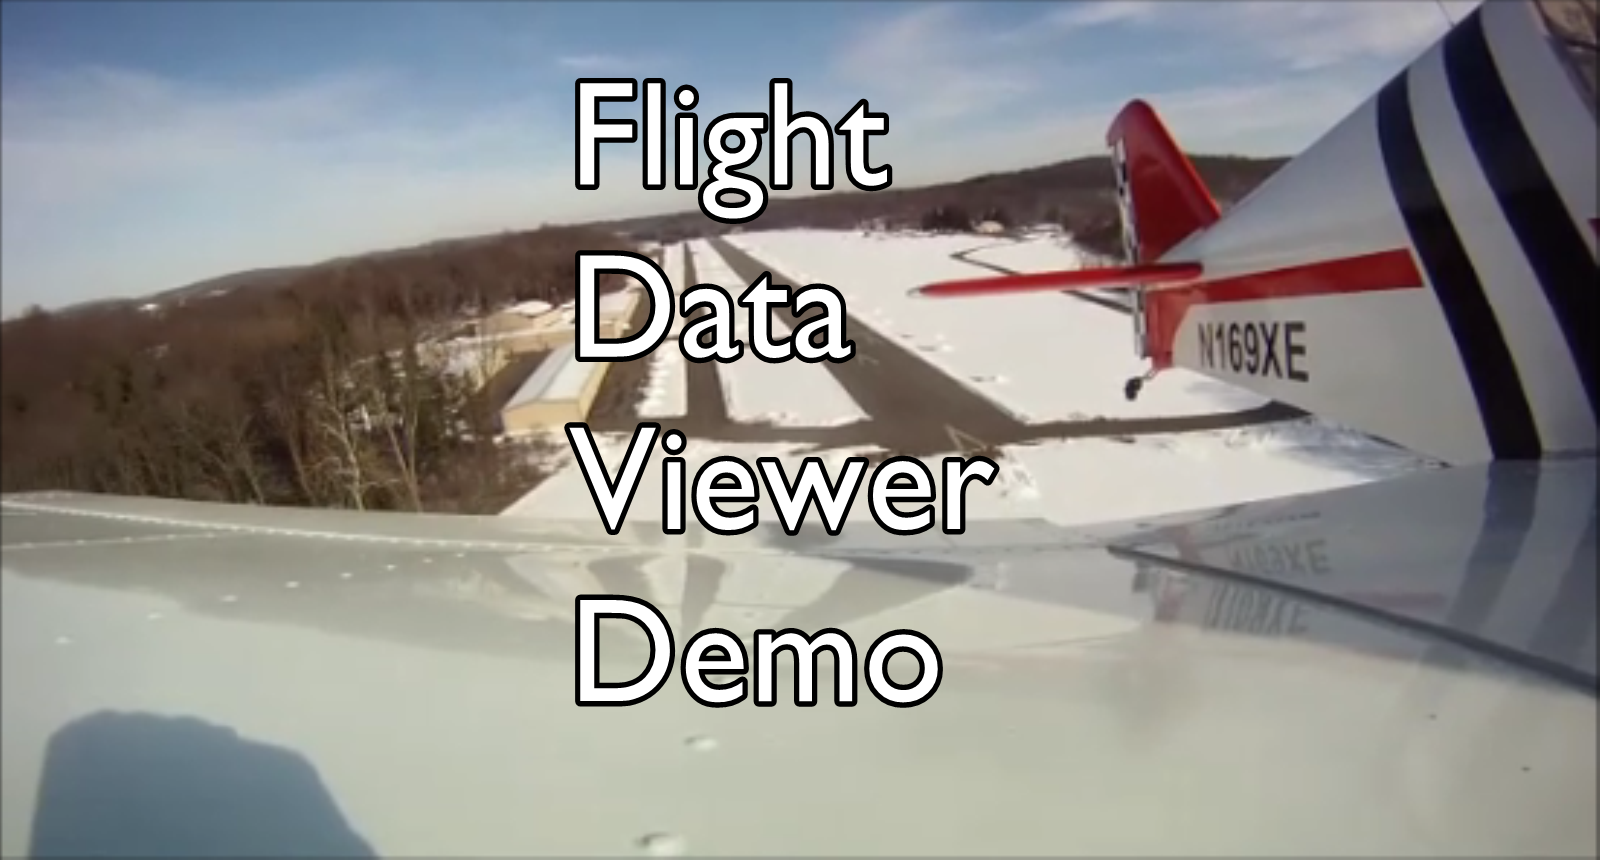 Flight Data Viewer Demo